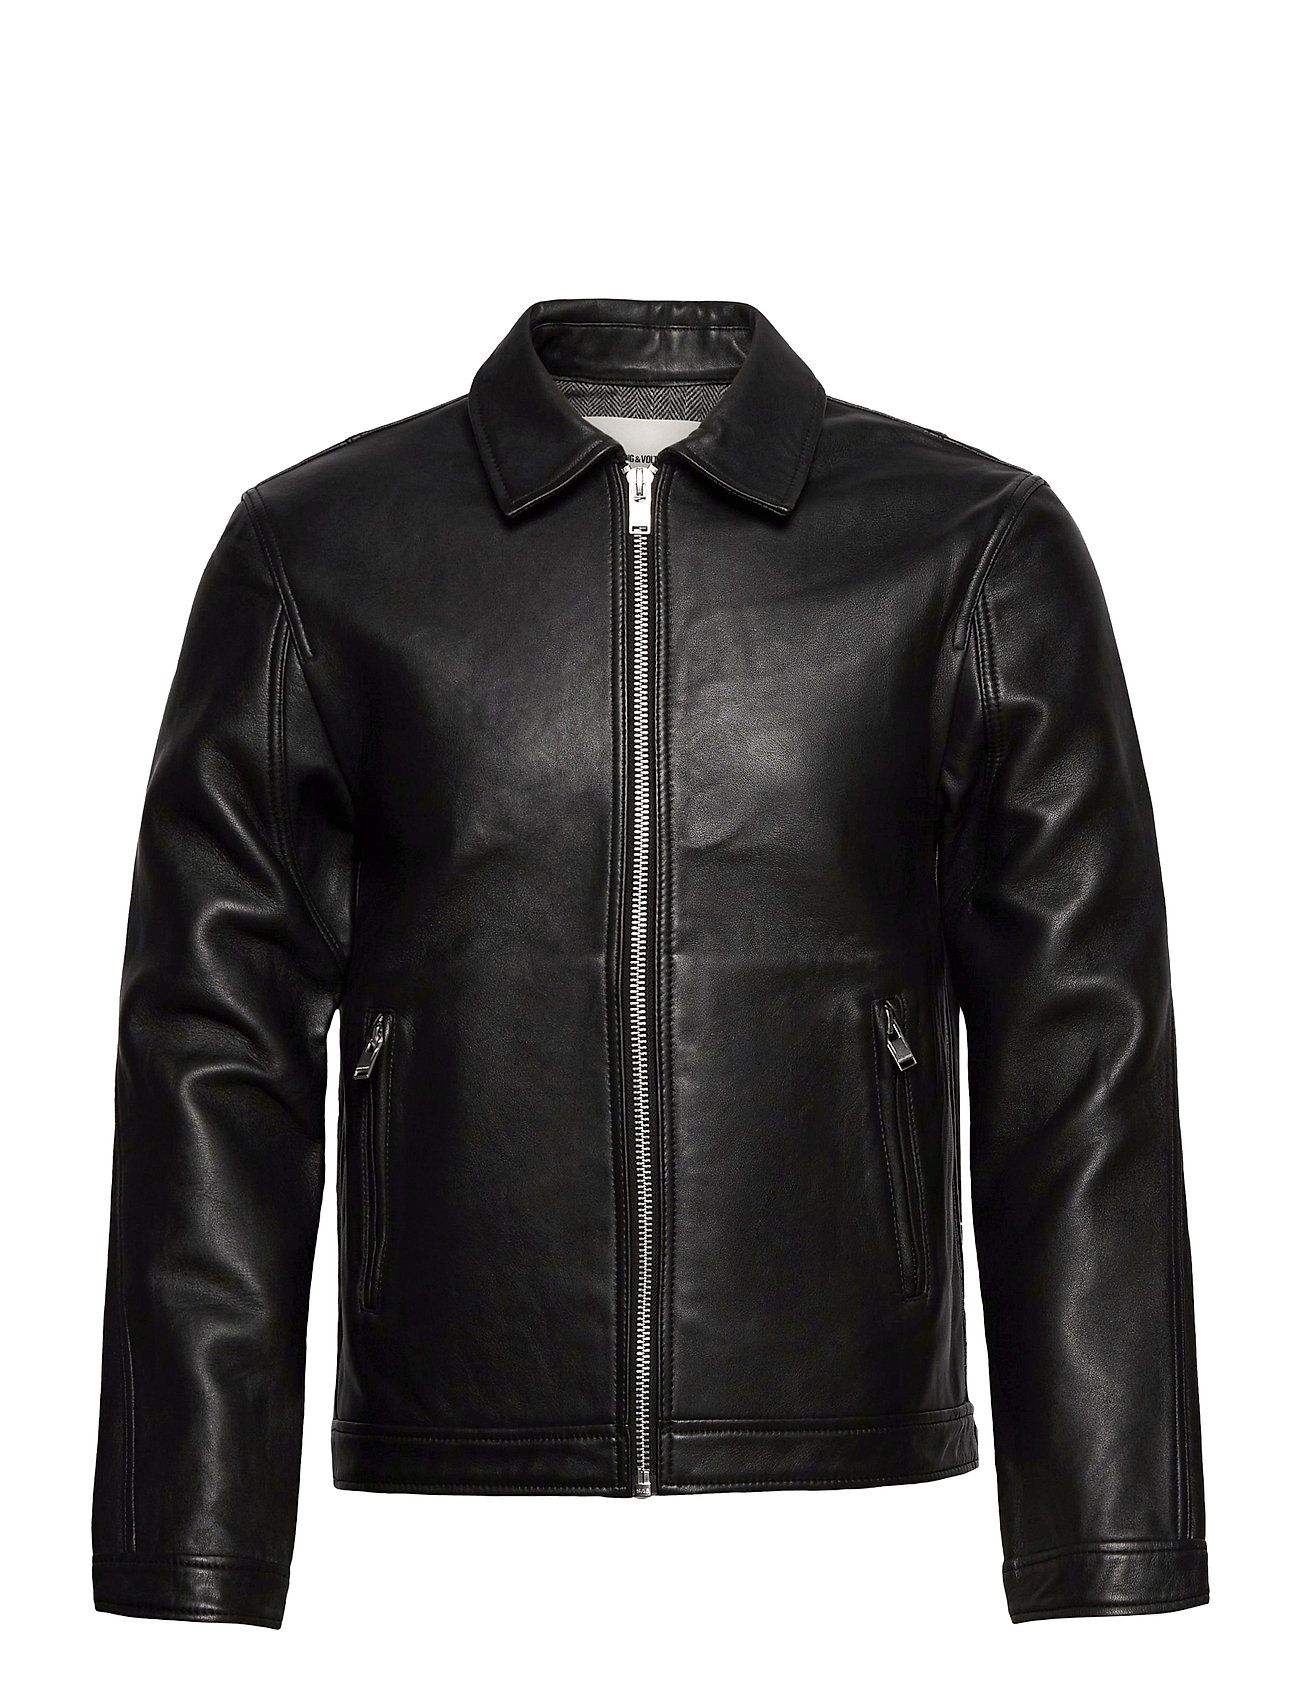 Image of Luk Bonded Leather Jacket Læderjakke Skindjakke Sort Zadig & Voltaire (3493273621)